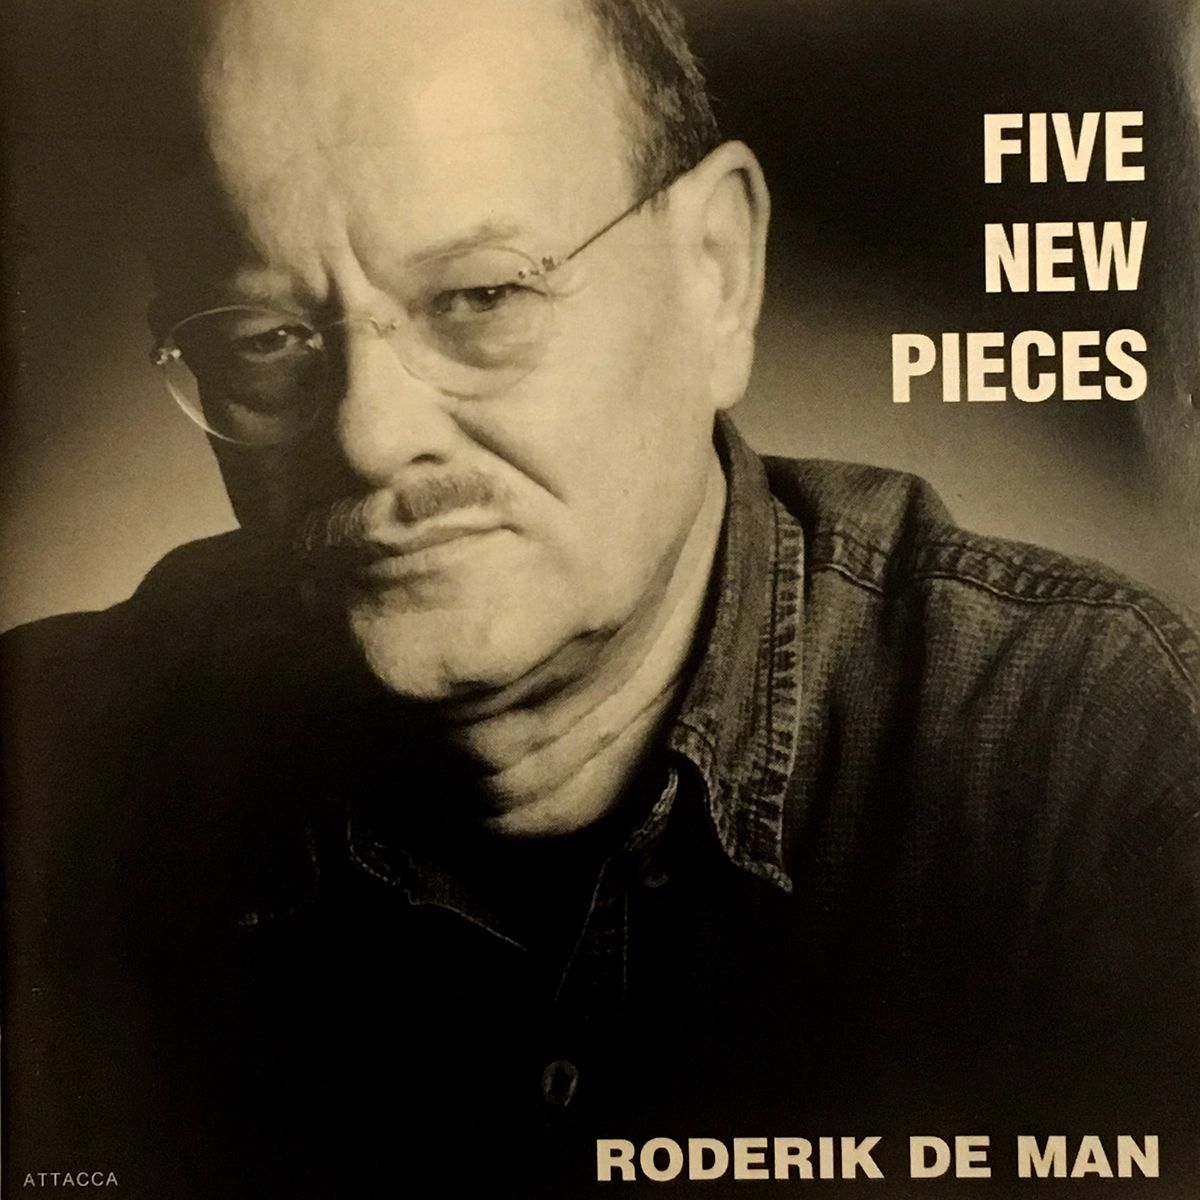 Roderik de Man. Five new pieces